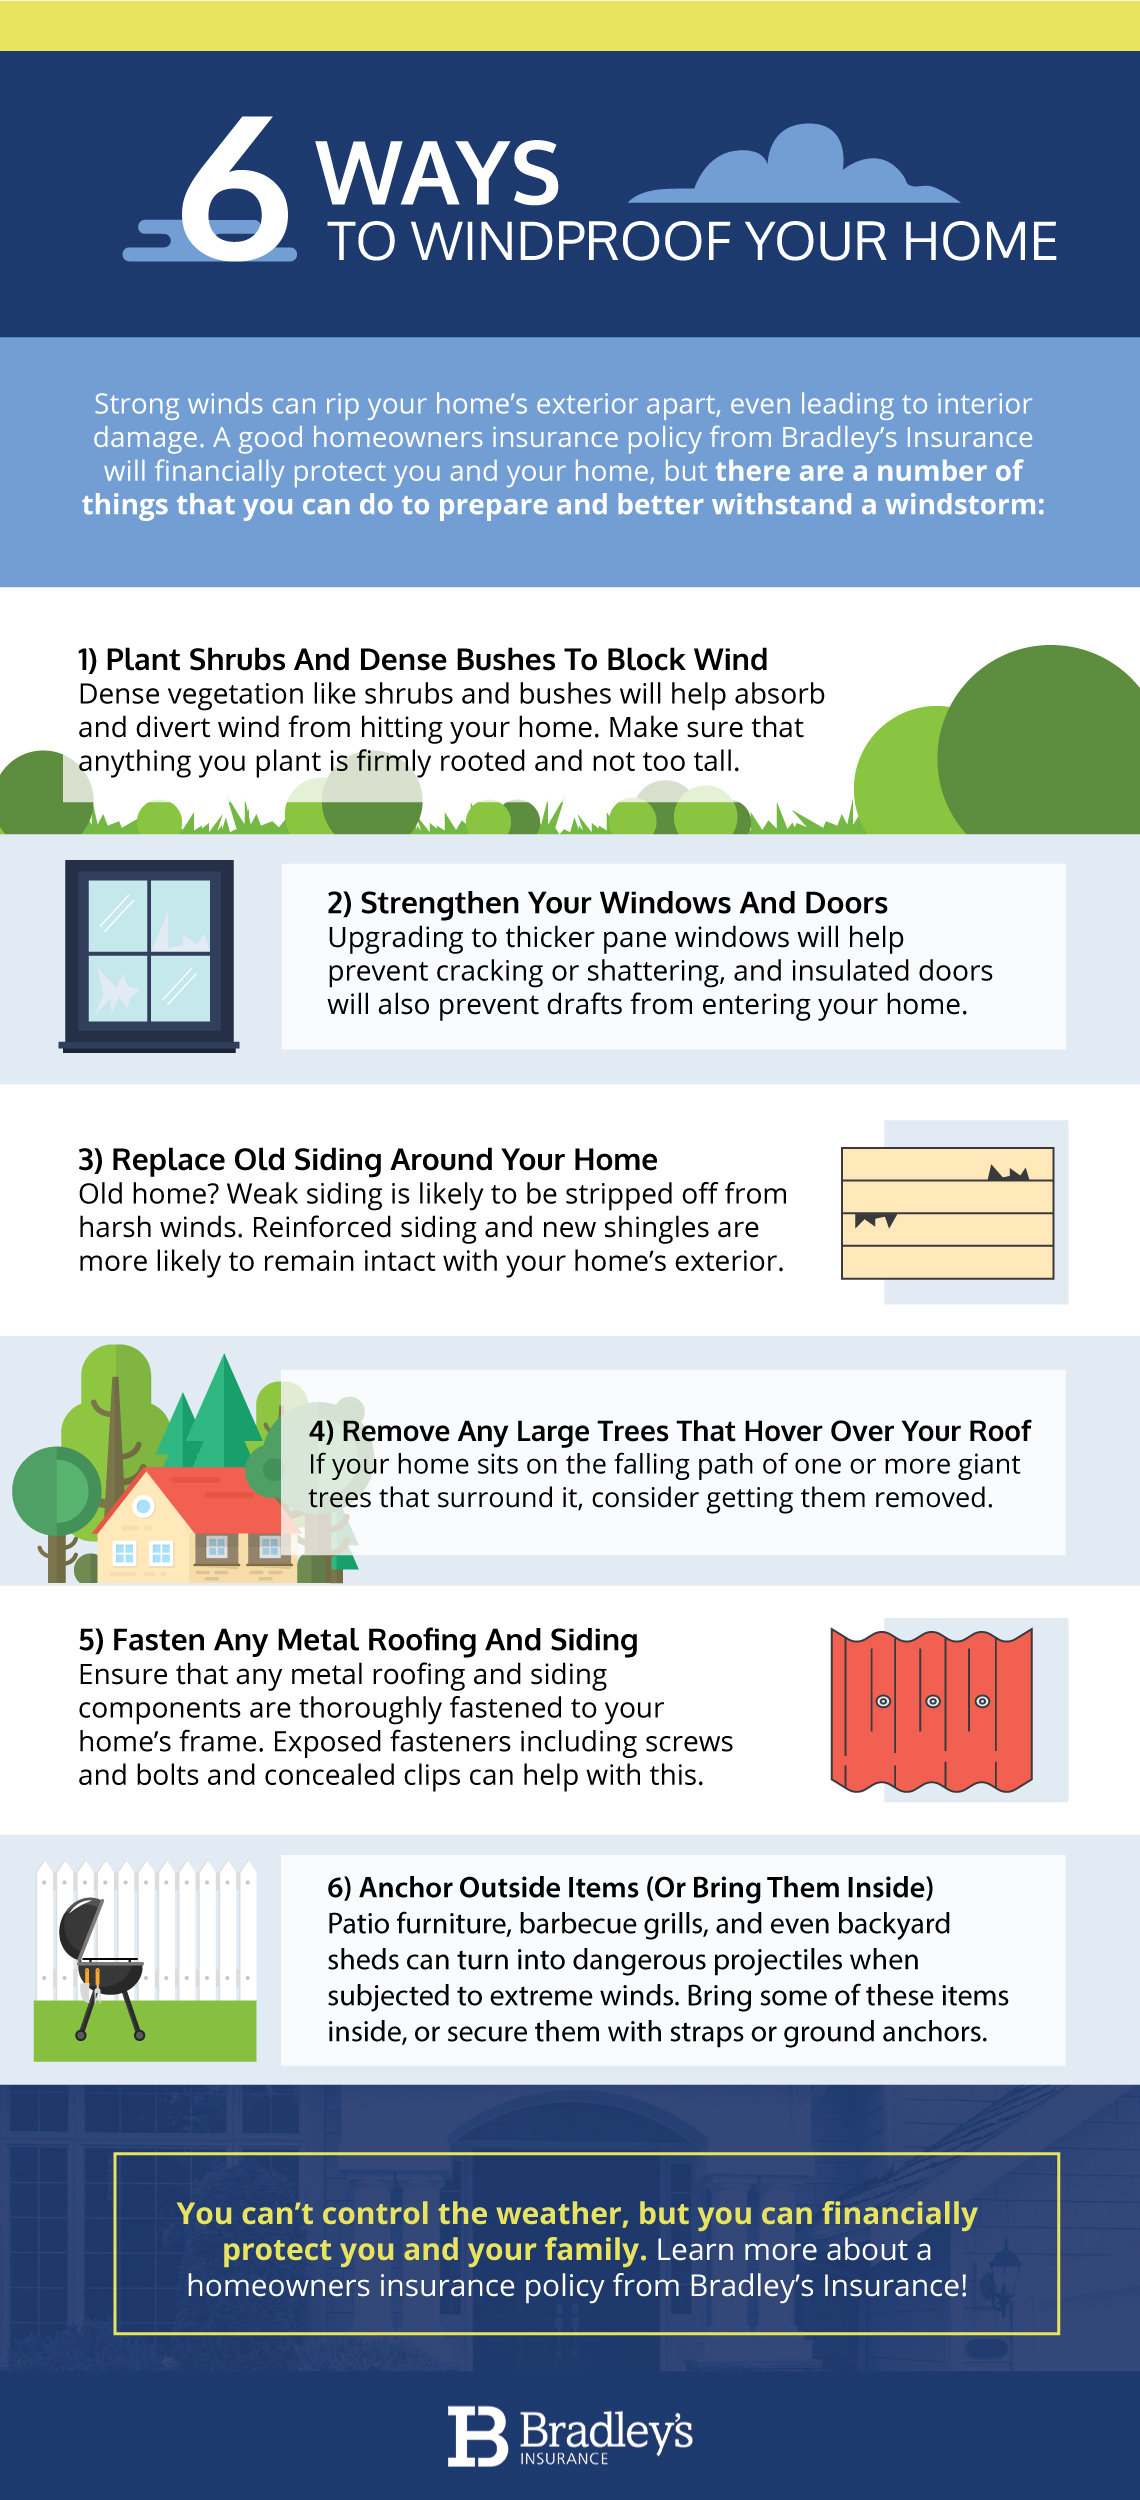 6 Ways To Windproof Your Home